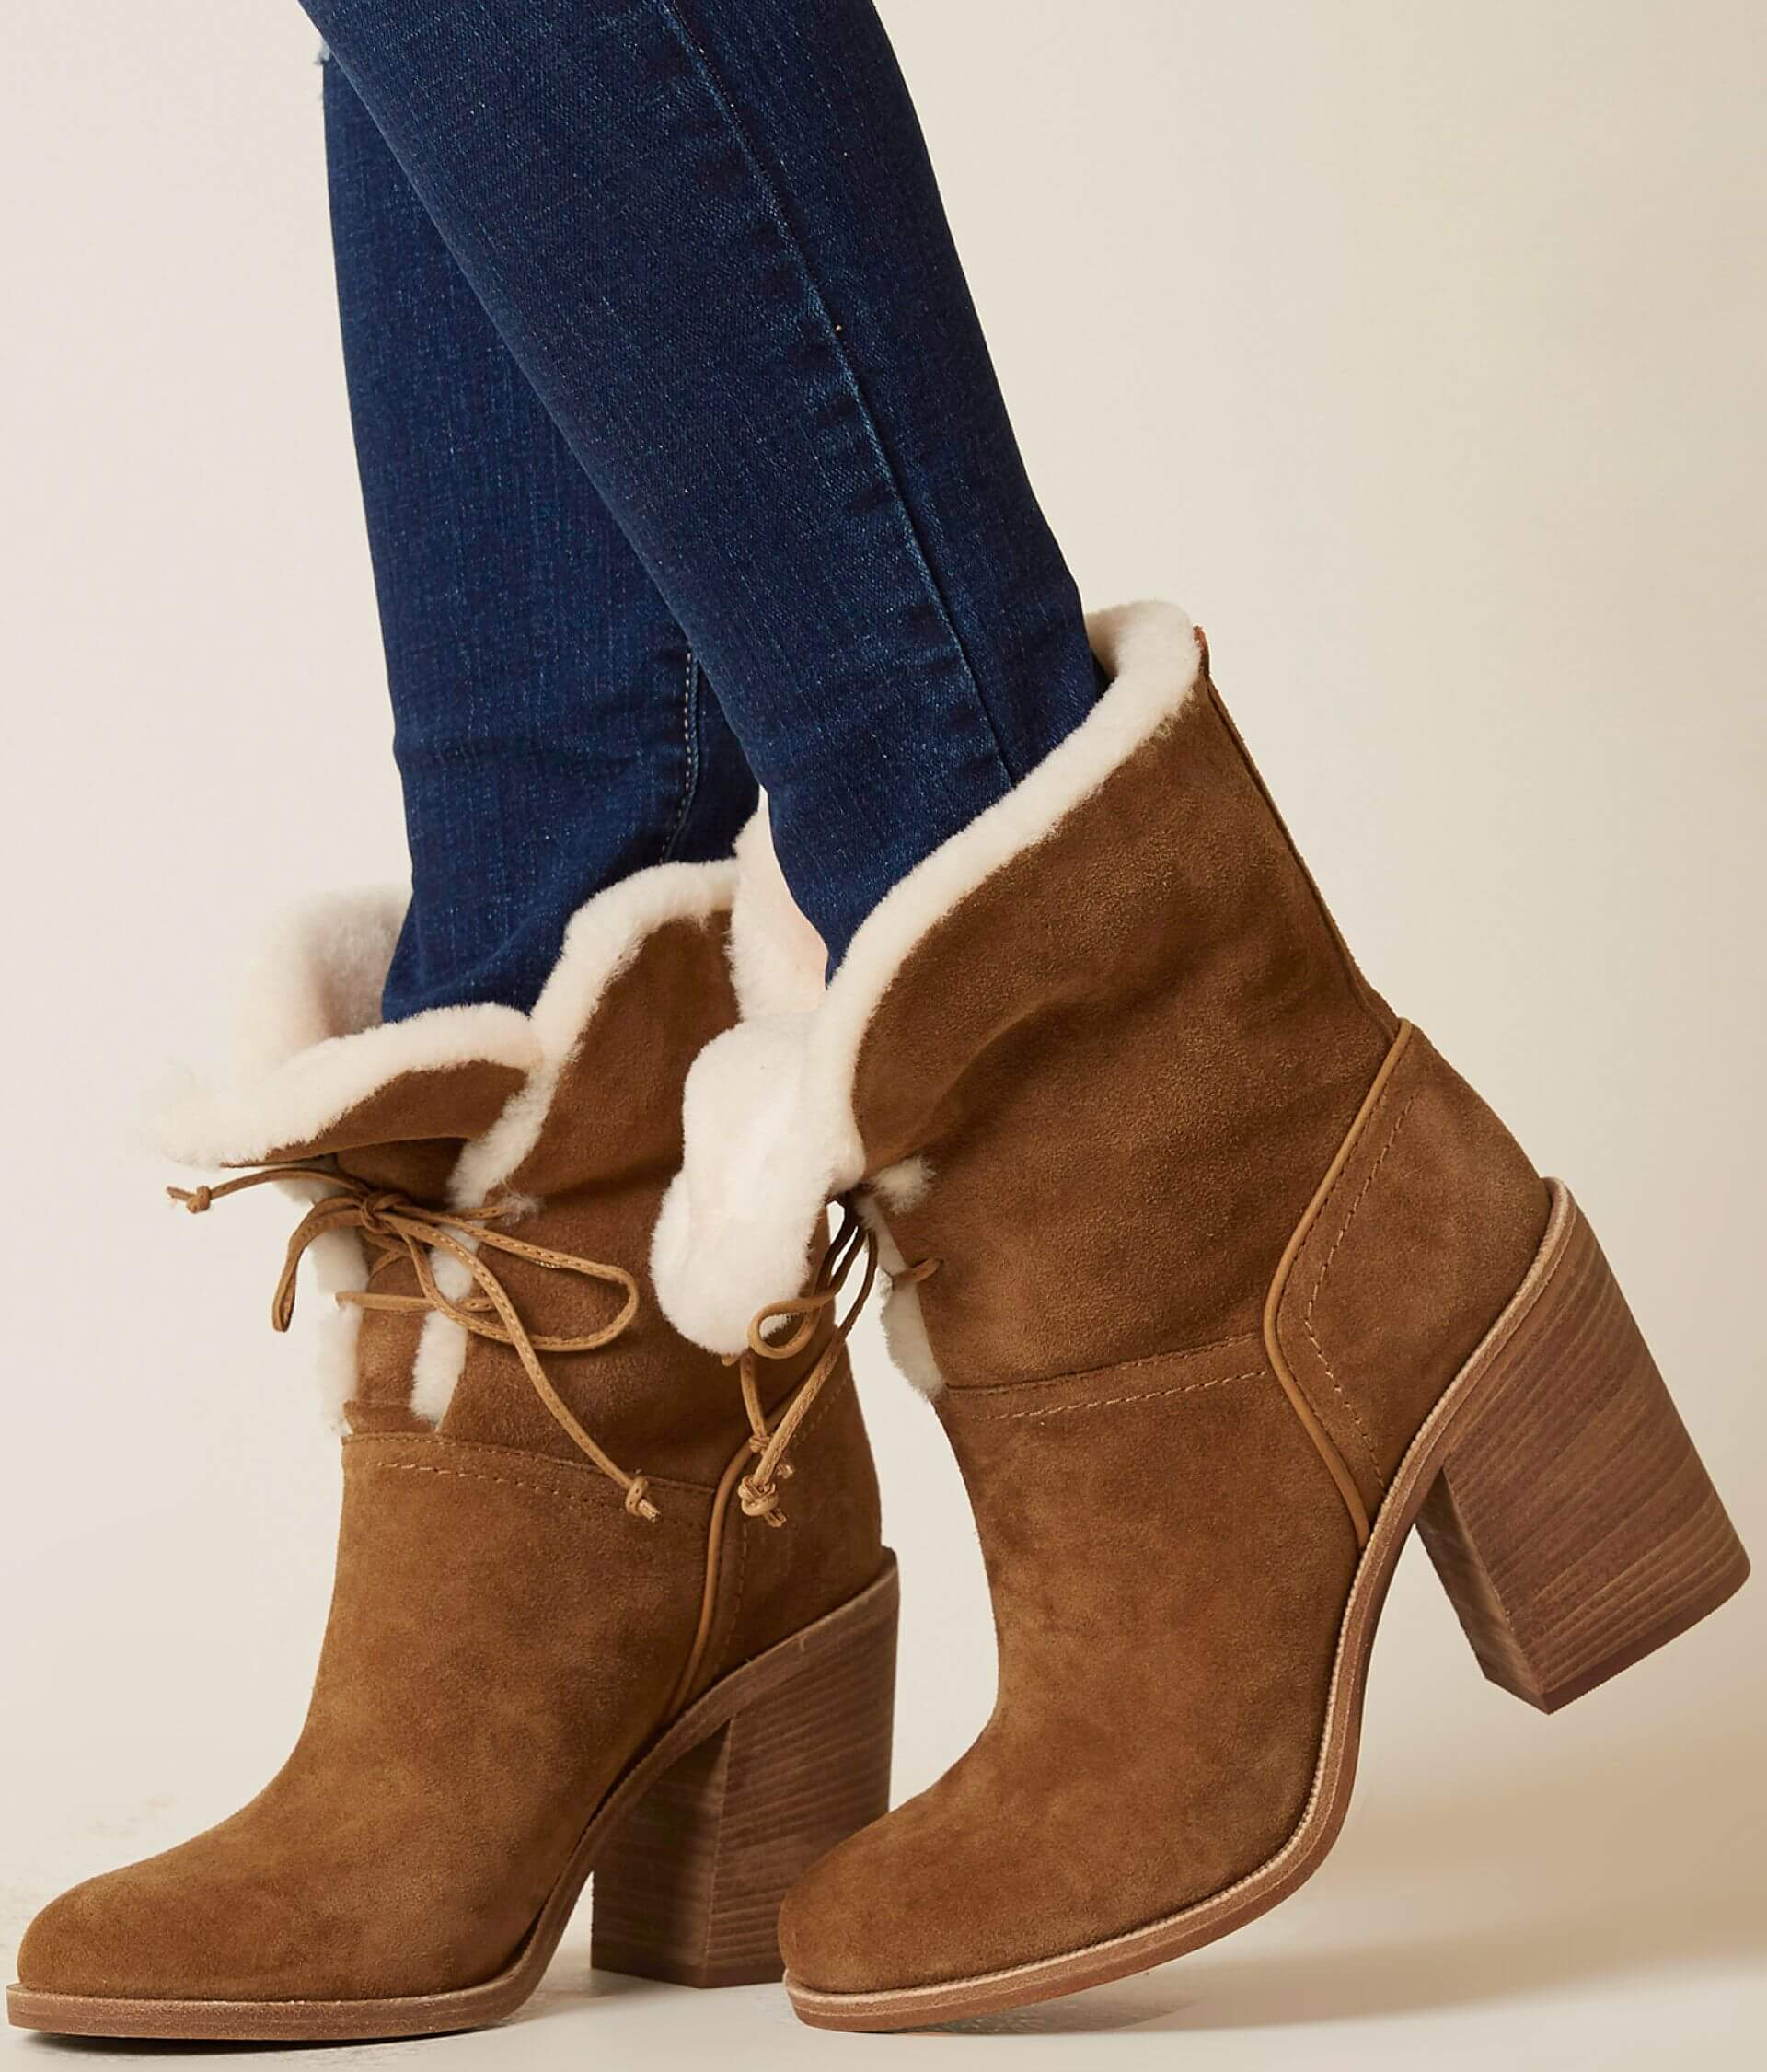 209a3dc6a01 UGG® Jerene Leather Boot - Women's Shoes in Chestnut | Buckle